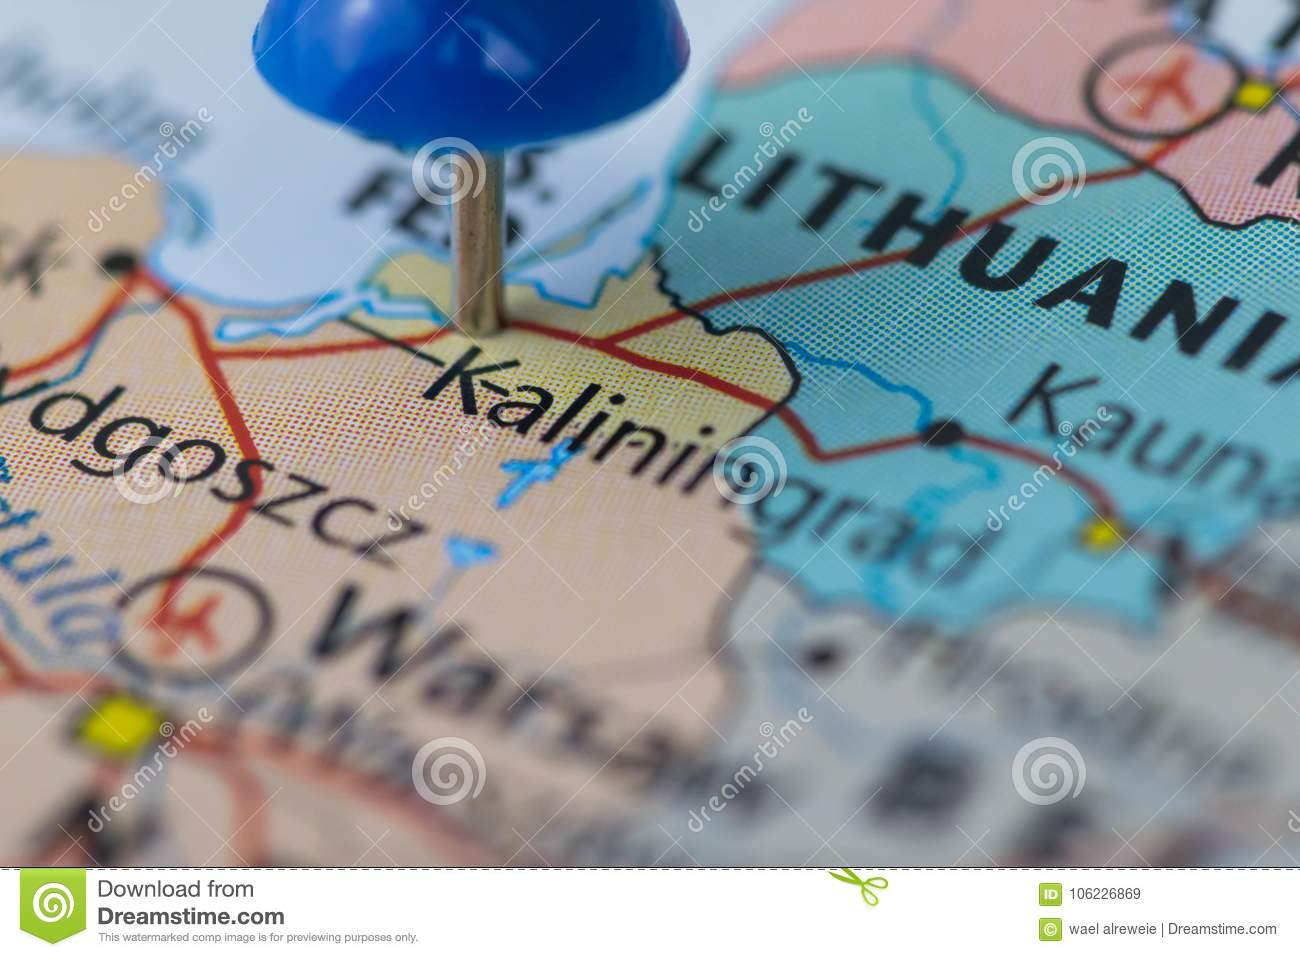 Kaliningrad Russia On World Map on kaliningrad map with cities, kaliningrad port map, kaliningrad map of northern europe, city of kaliningrad russia map,